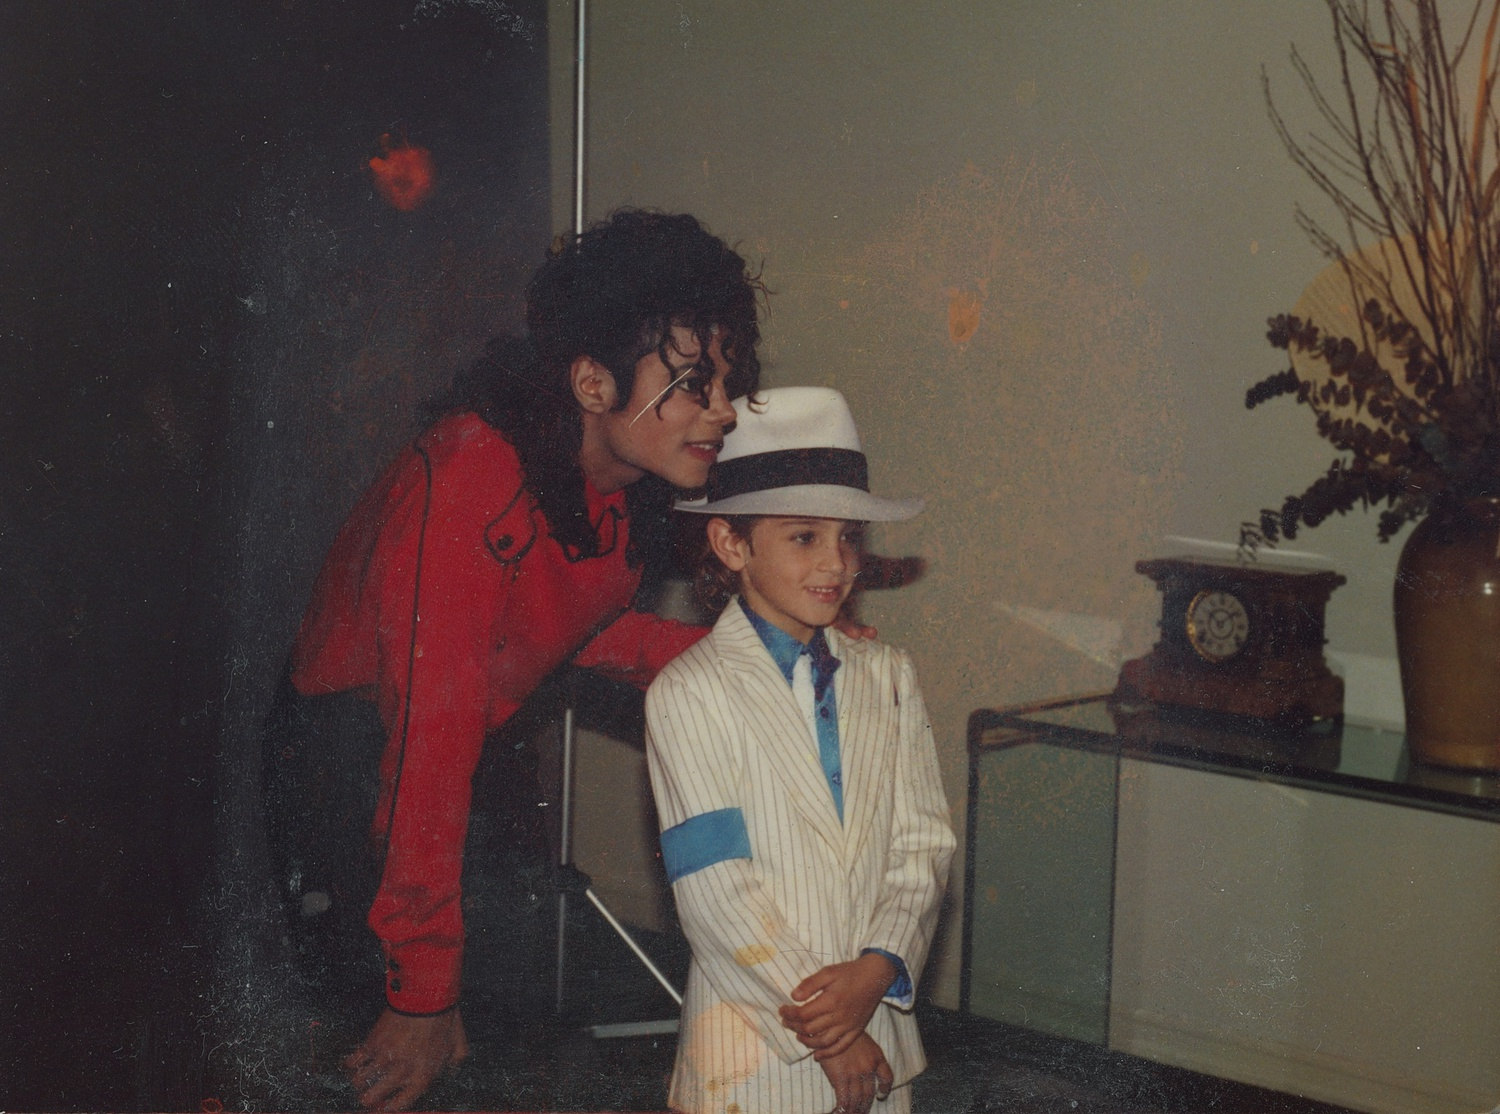 Michael Jackson and Wade Robson posing for a photo.